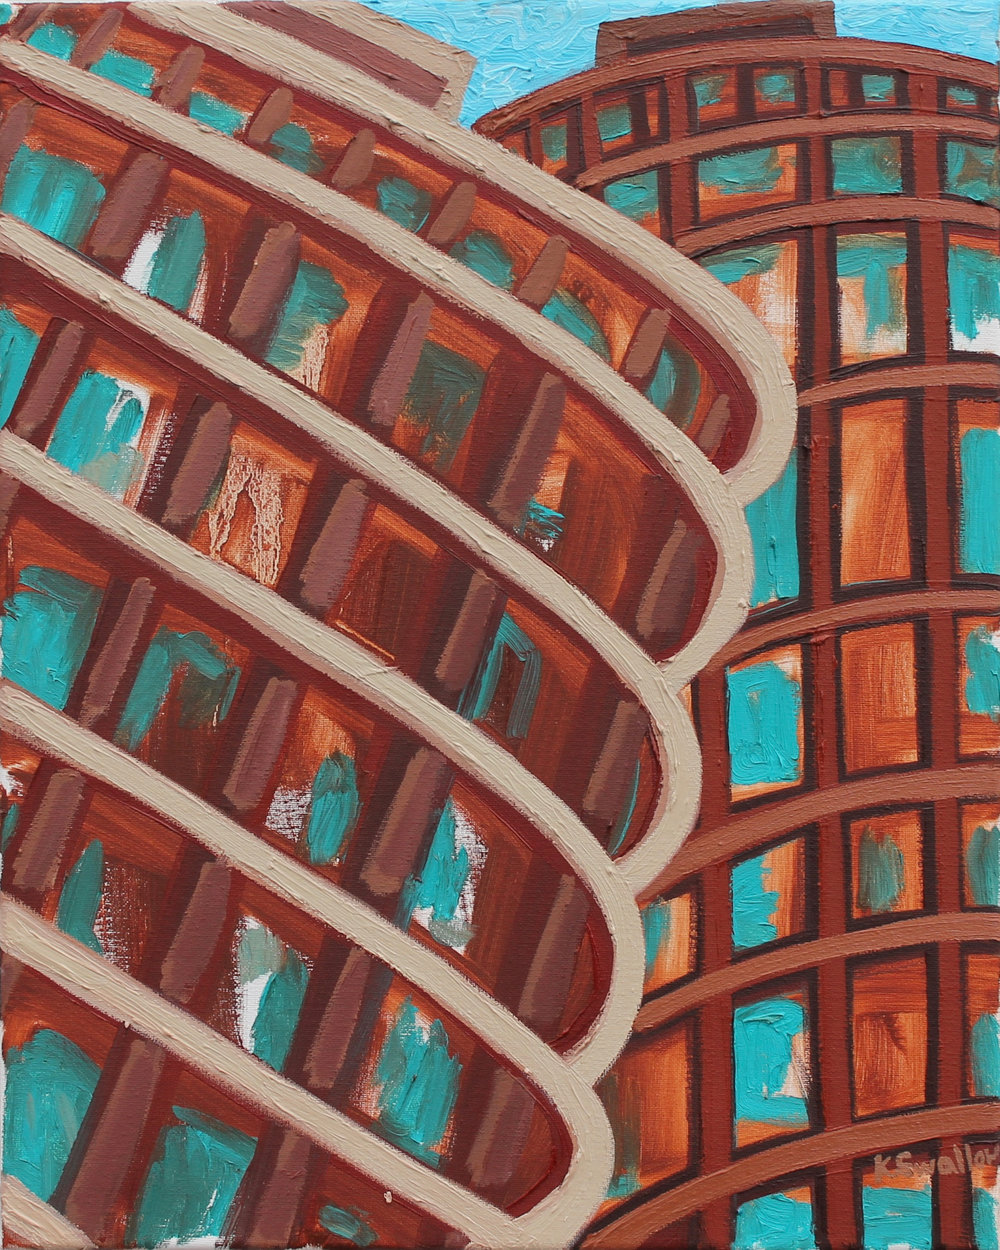 Marina Towers #1, oil on canvas, 20x16, 2017, AVAILABLE